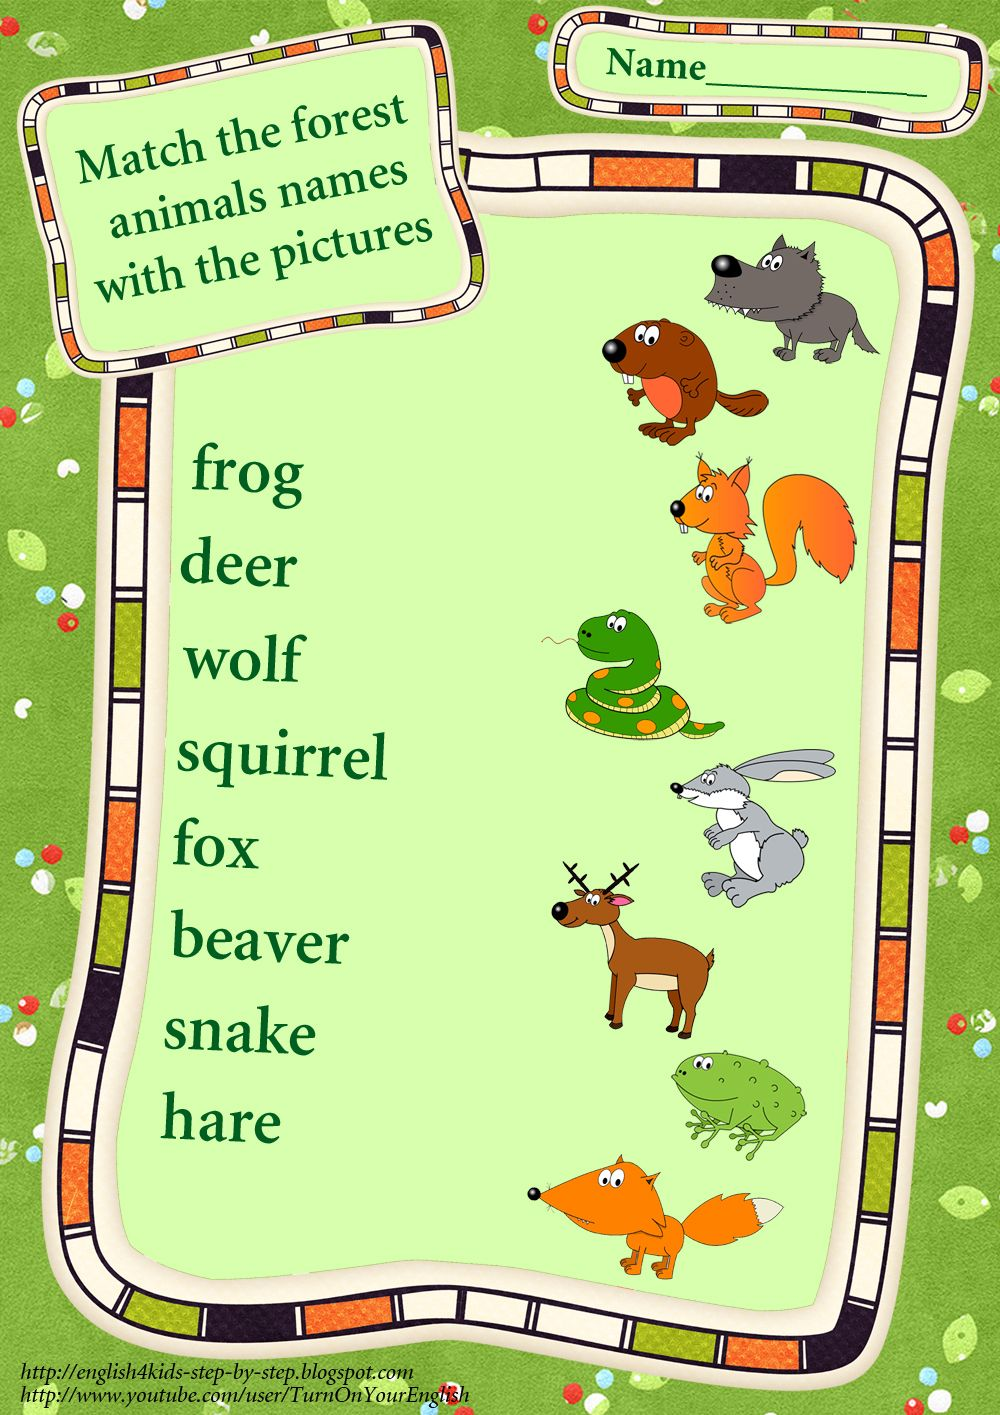 Pin by Turn on Your English on Forest Animals Flashcards